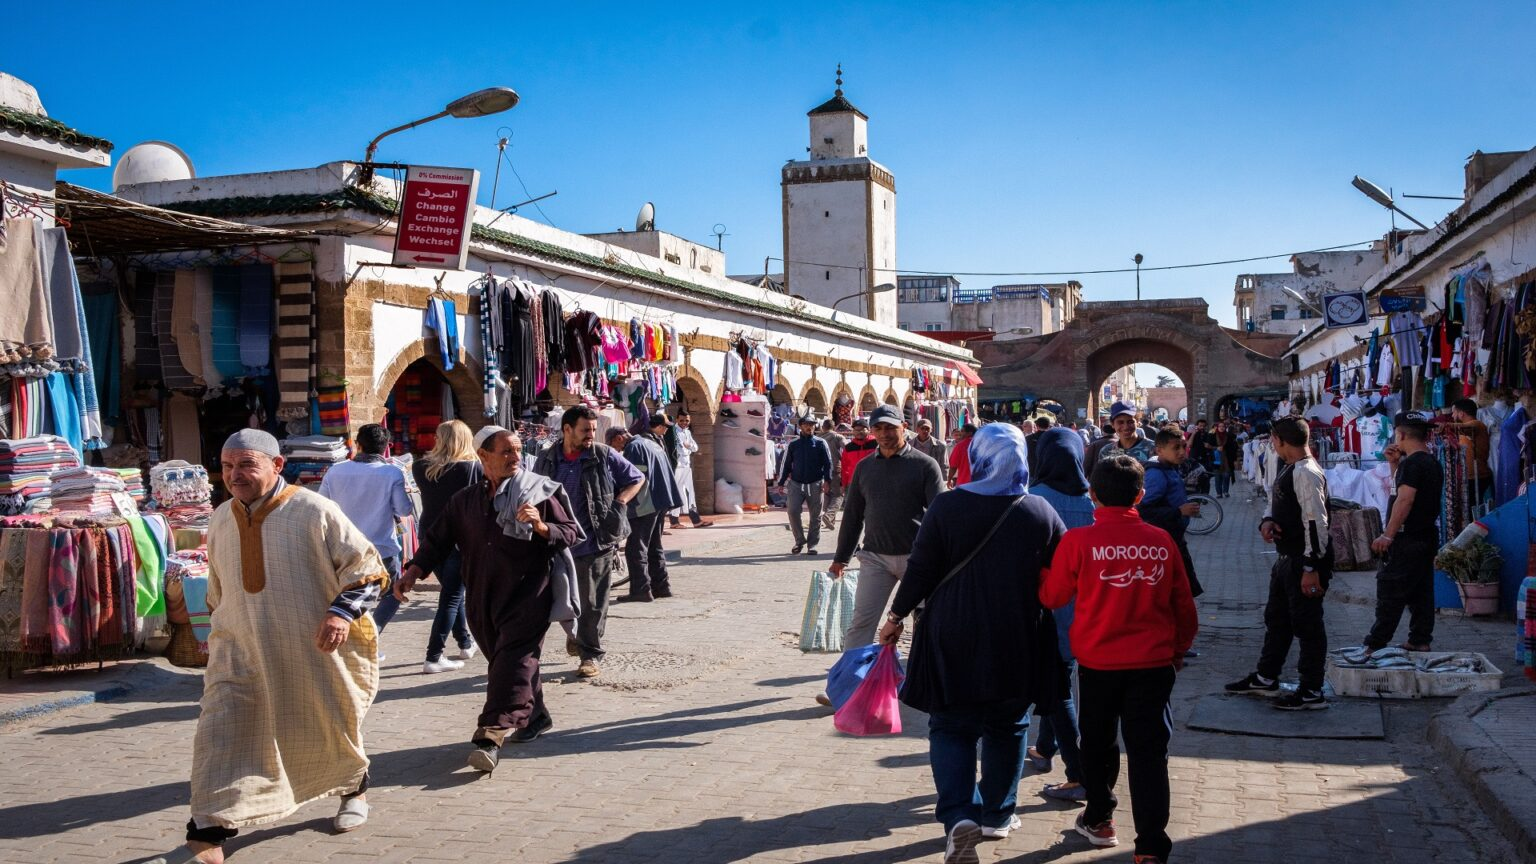 The Moroccan city Oujda witnessed an active commercial movement after Amazighs celebrated the Amazigh New Year.